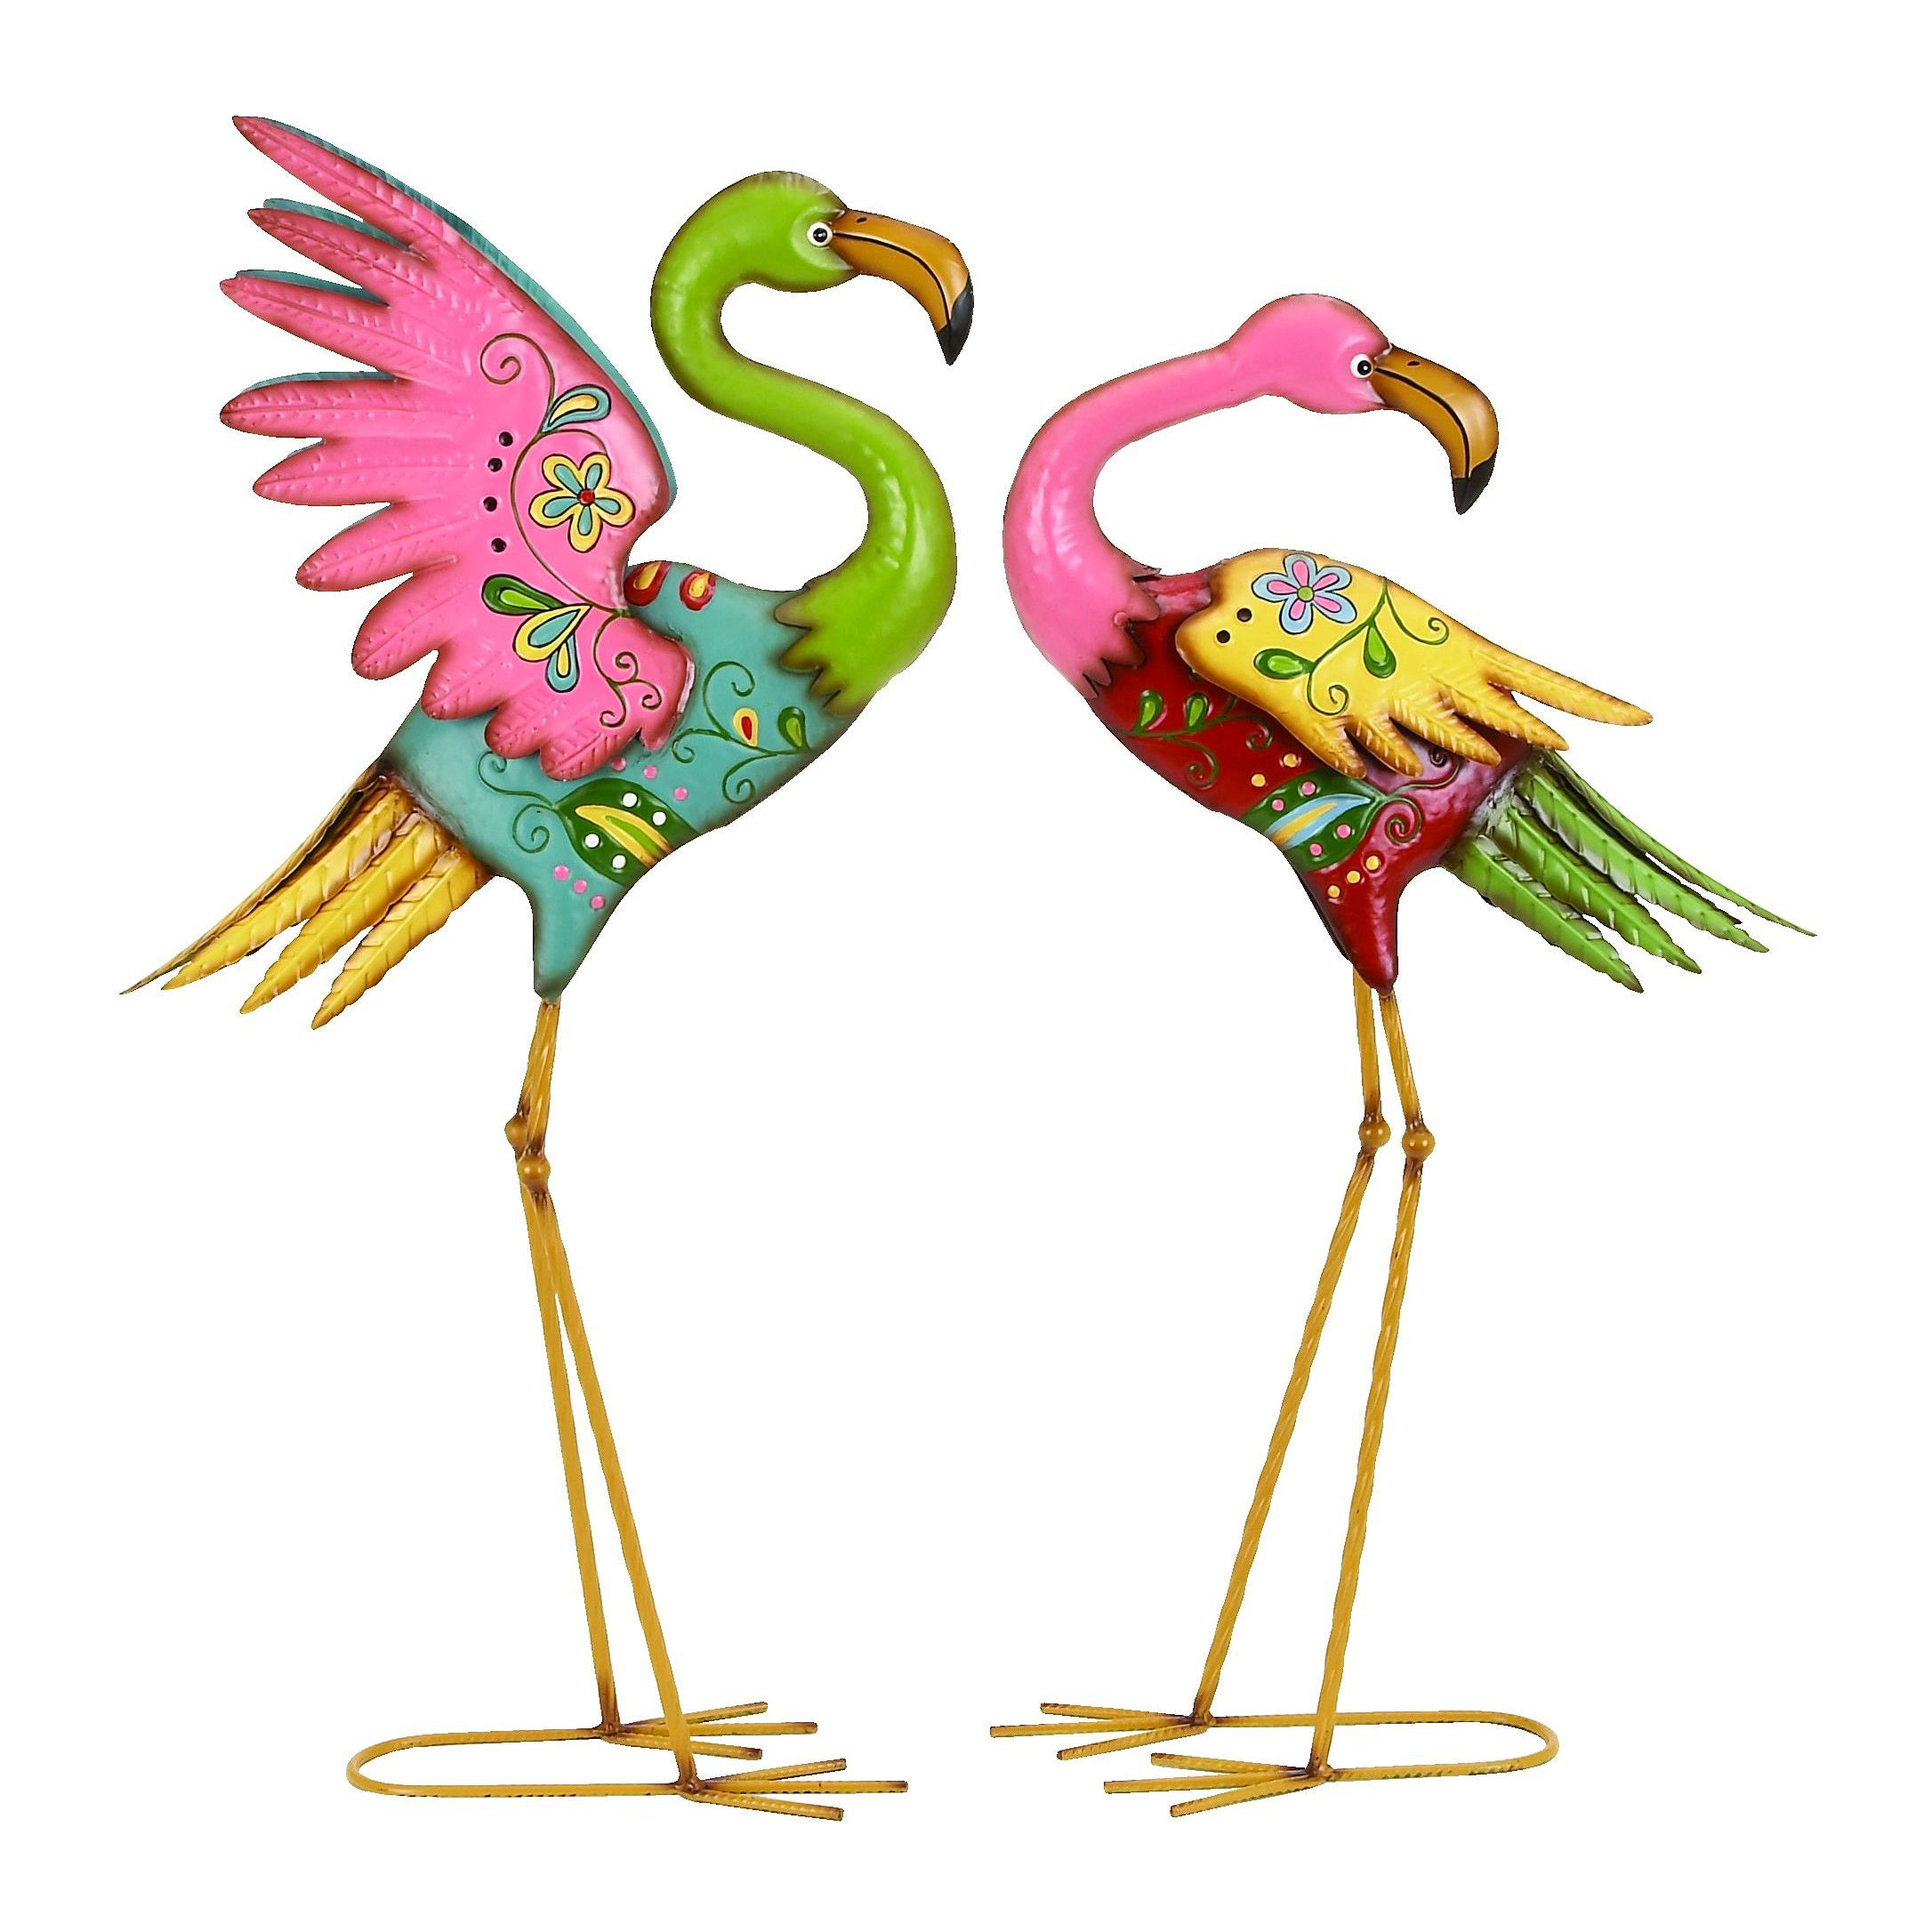 flamingo landscape simulation handicraft wedding accessories scenery garden party courtyard product store sculpture plastic flags hot decorations cement